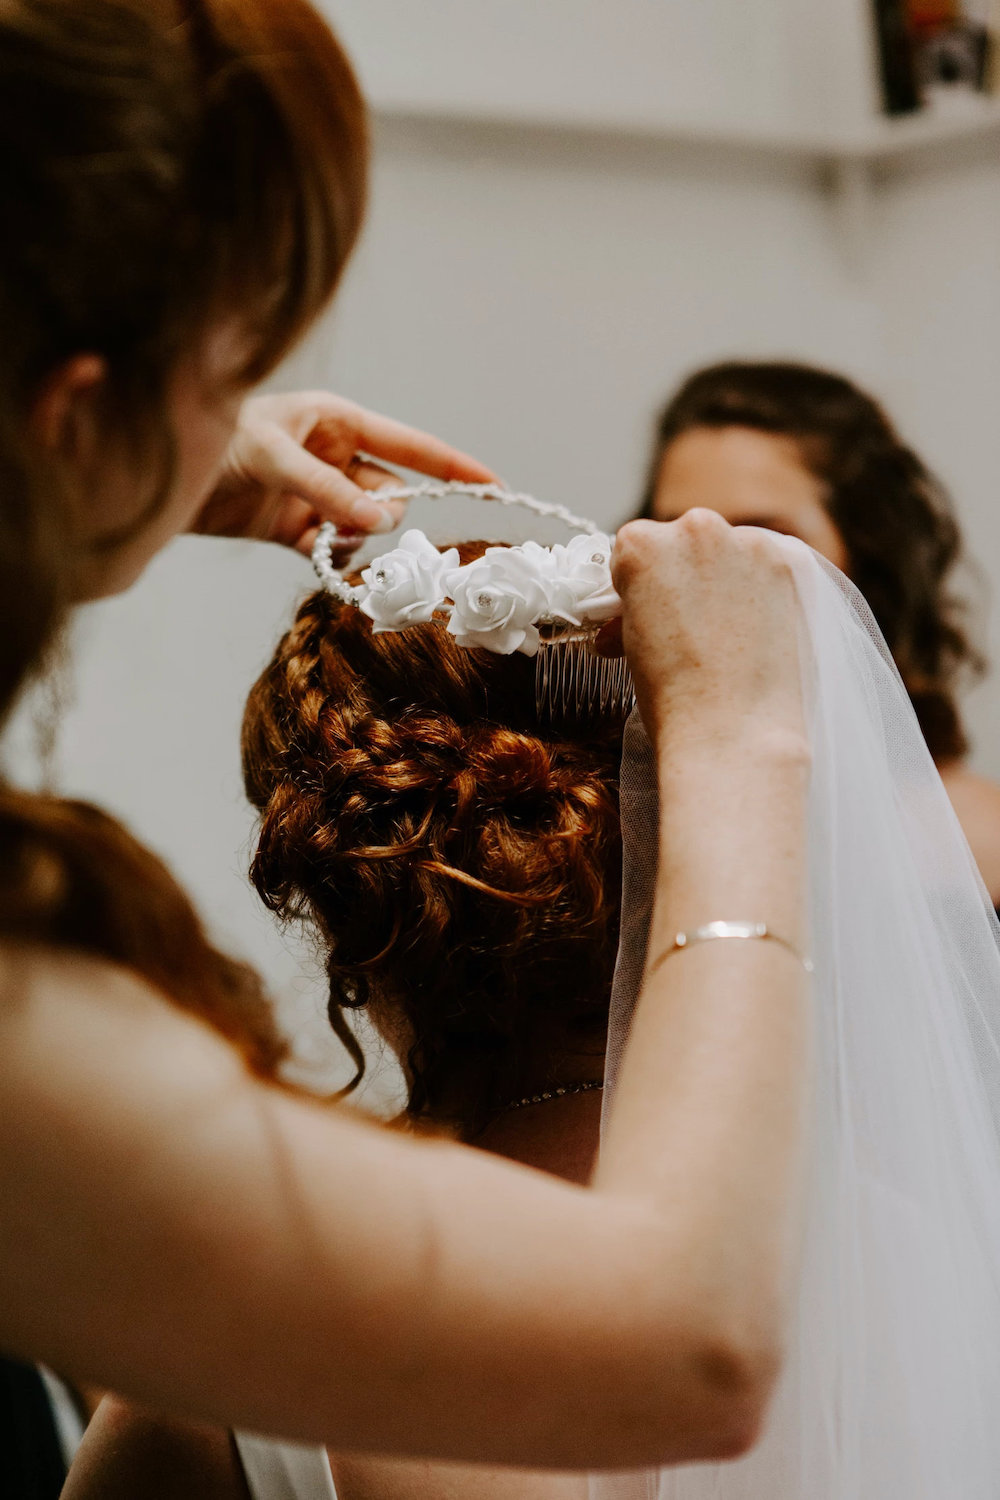 How to Choose Your Bridal Party Best Wedding Planning Tips Warrior Rose Events 3